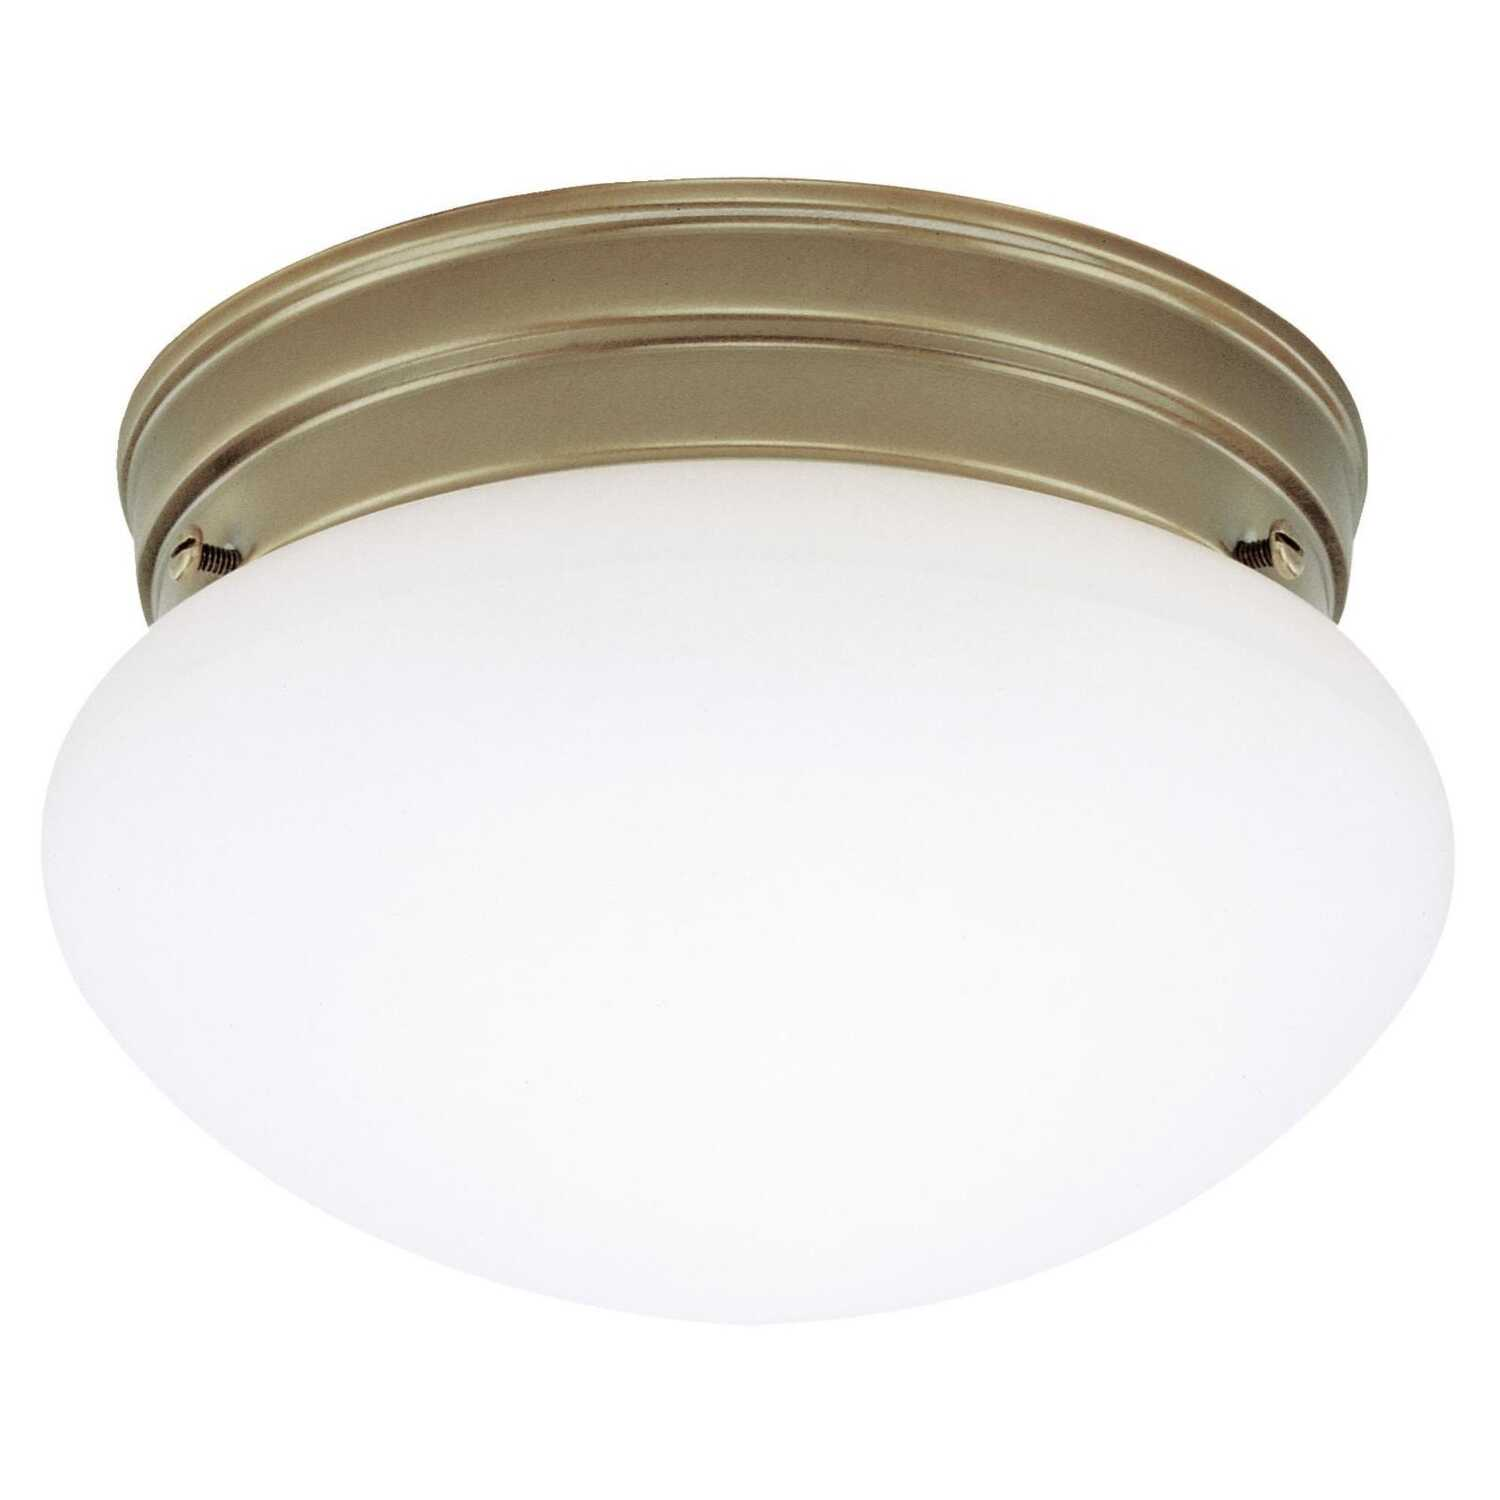 Westinghouse  4-3/8 in. H x 7-1/4 in. W x 7.25 in. L Ceiling Light